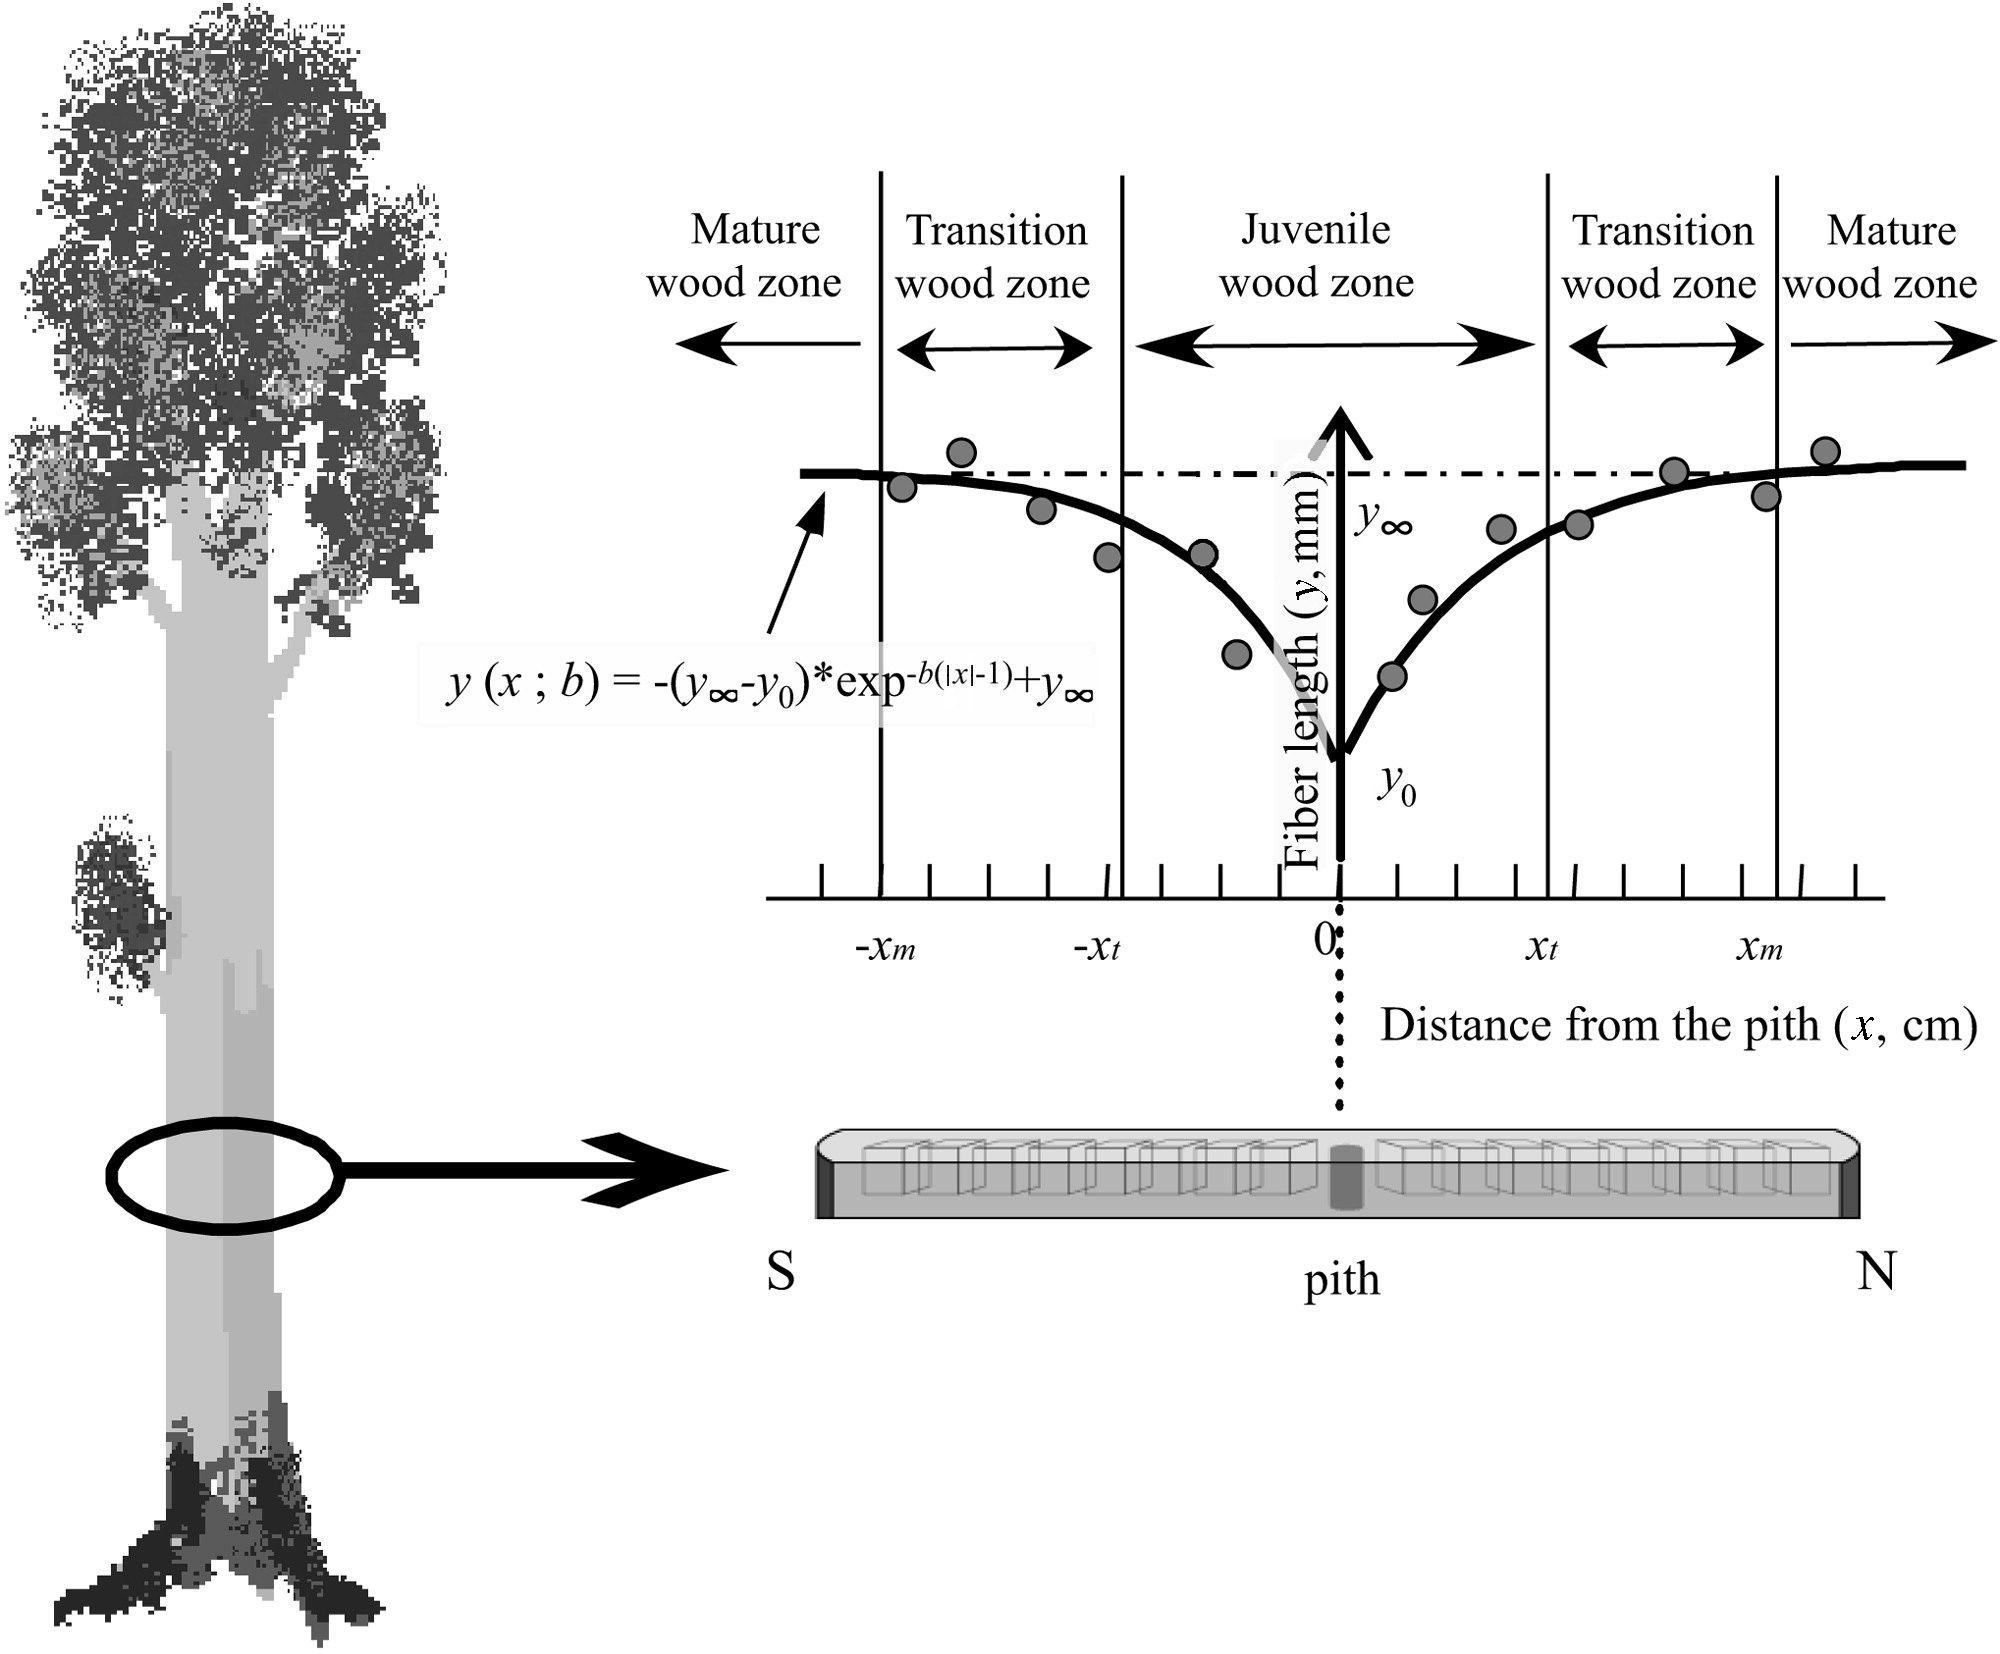 Determining Factor Of Xylem Maturation In Eucalyptus Grandis Planted In Different Latitudes And Climatic Divisions Of South America A View Based On Fiber Length Used to refer to the starting height of an object in newtonian physics textbooks. canadian science publishing